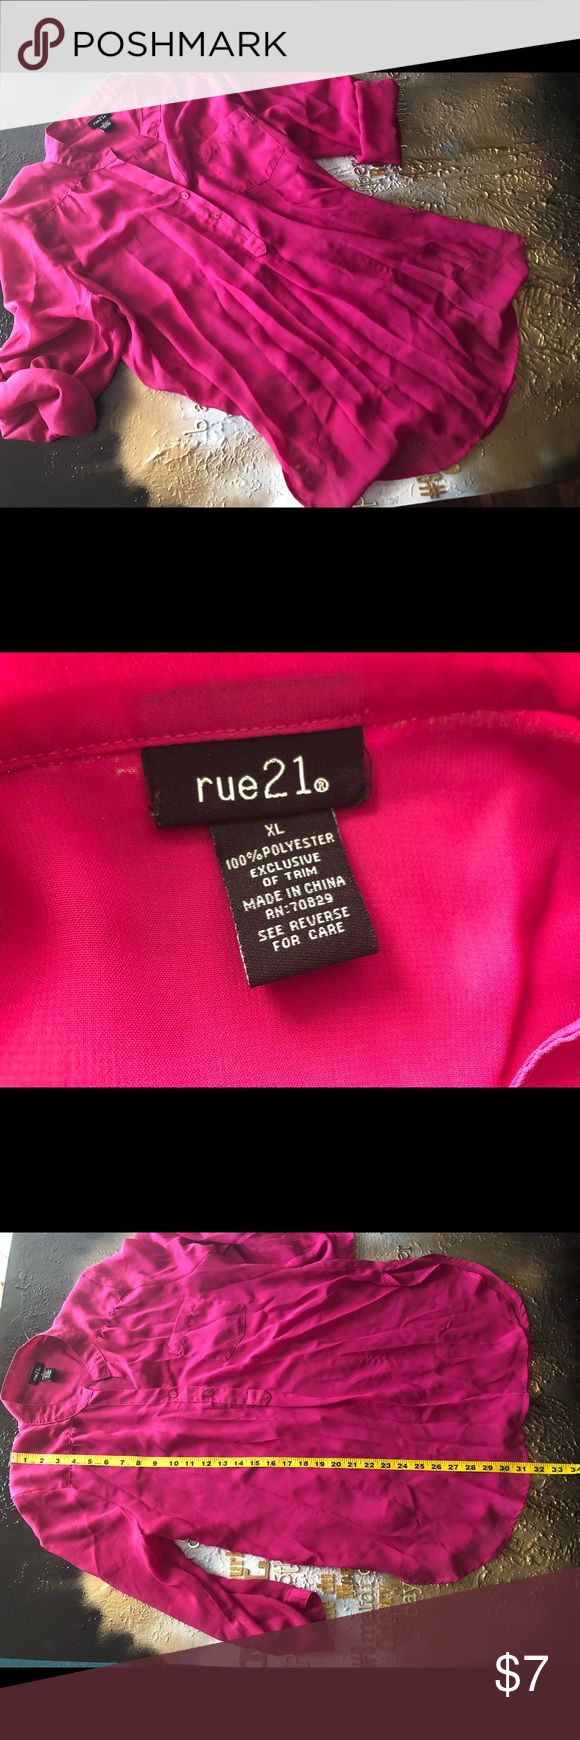 XL🛍Rue 21🛍hot pink blouse Rue 21 blouse  Size:XL Color:Hot Pink Material: 100% polyester exclusive trim  Shirt has a single front pocket, single button detail in back, side slits, can roll sleeves up and button or wear sleeves rolled down  •see pictures for measurement details  •bundle with other items from my closet for additional savings! Rue21 Tops Blouses